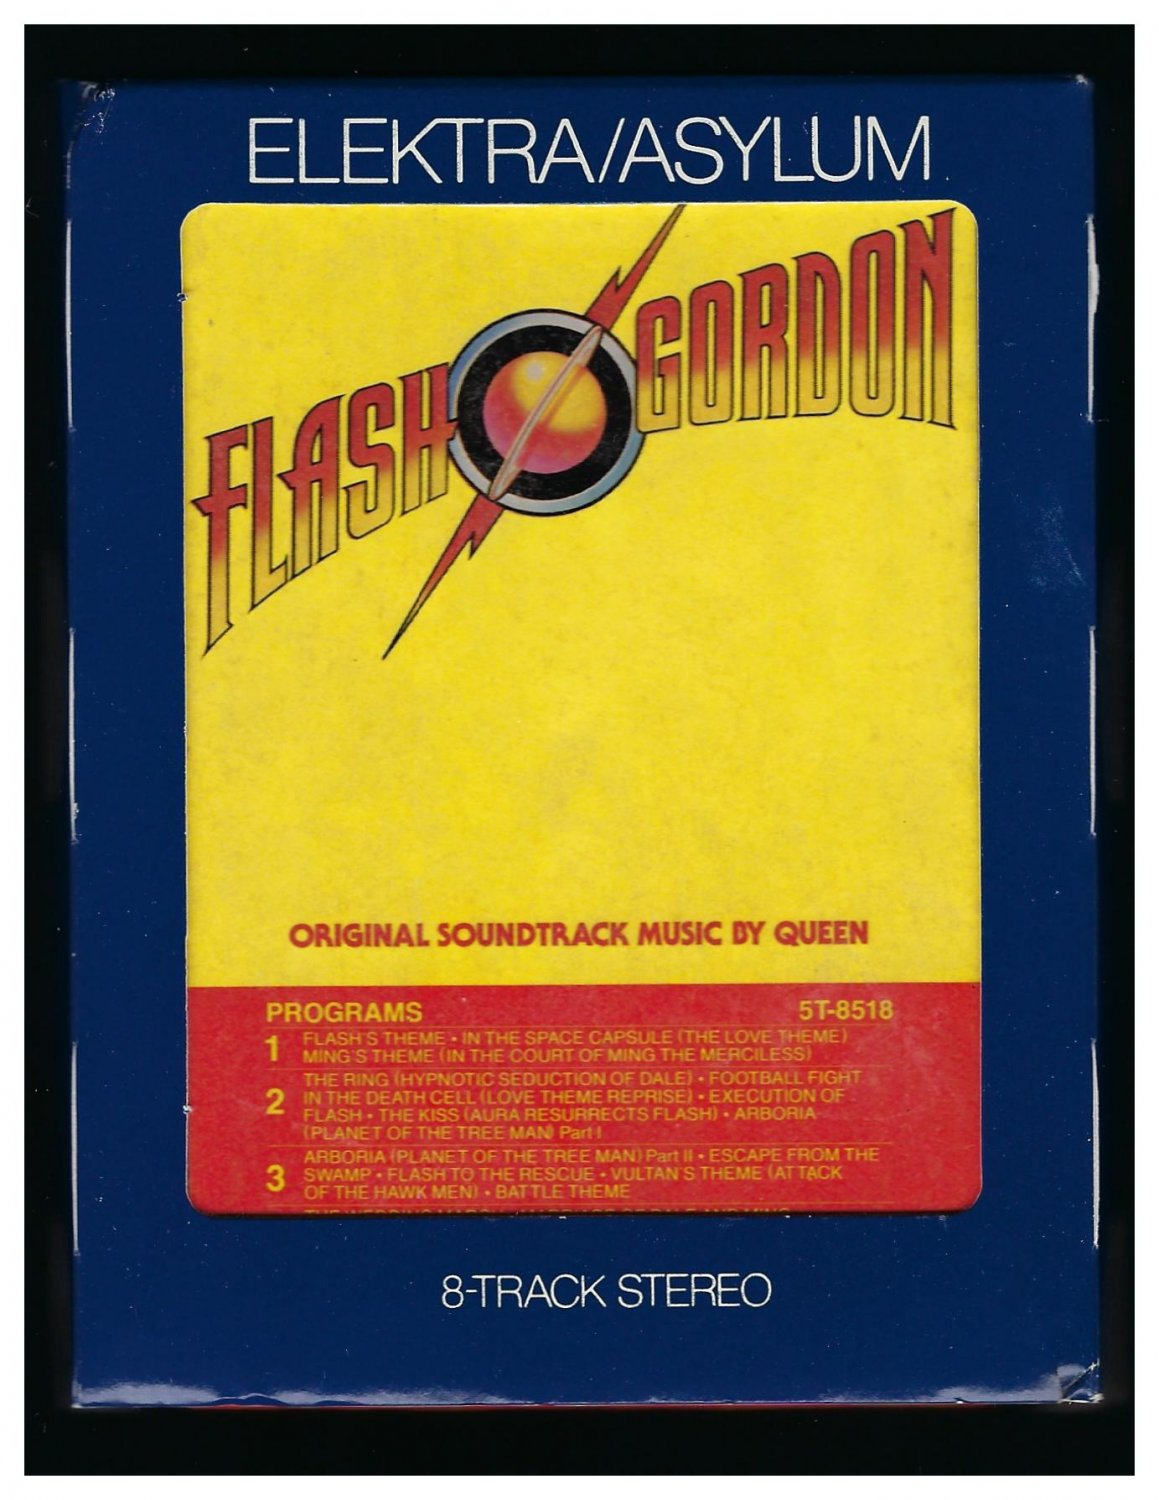 Queen - Flash Gordon Original Music Soundtrack 1980 ELEKTRA A21B 8-TRACK TAPE